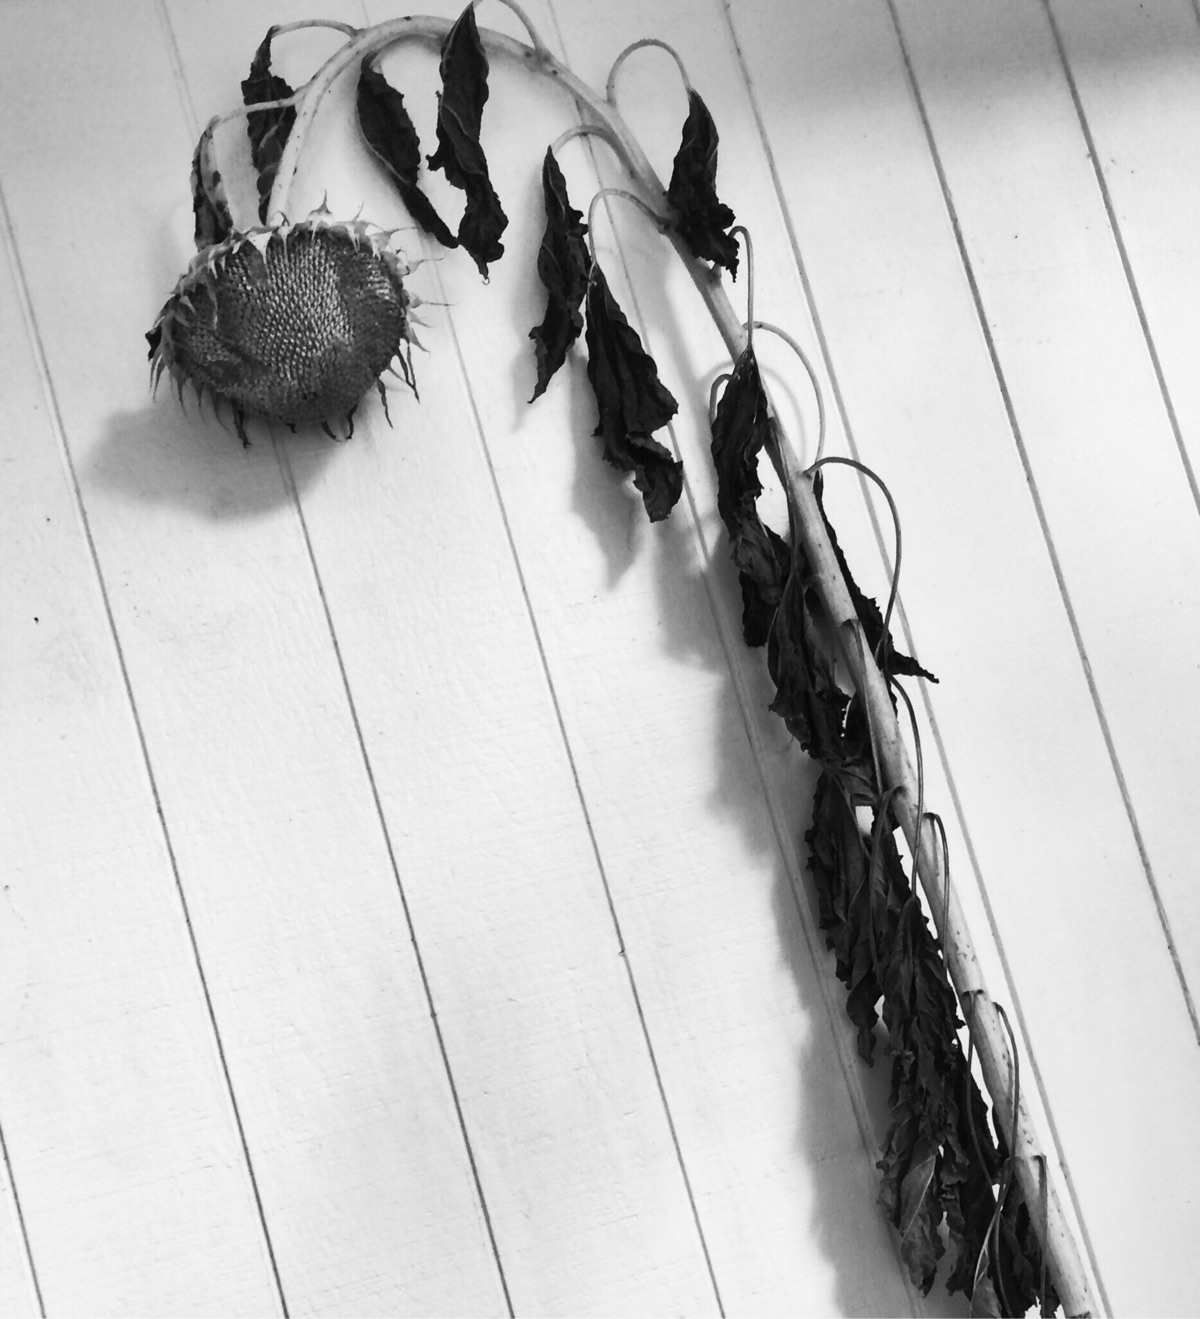 Sunflower - stilllife, blackandwhite - drewsview74 | ello